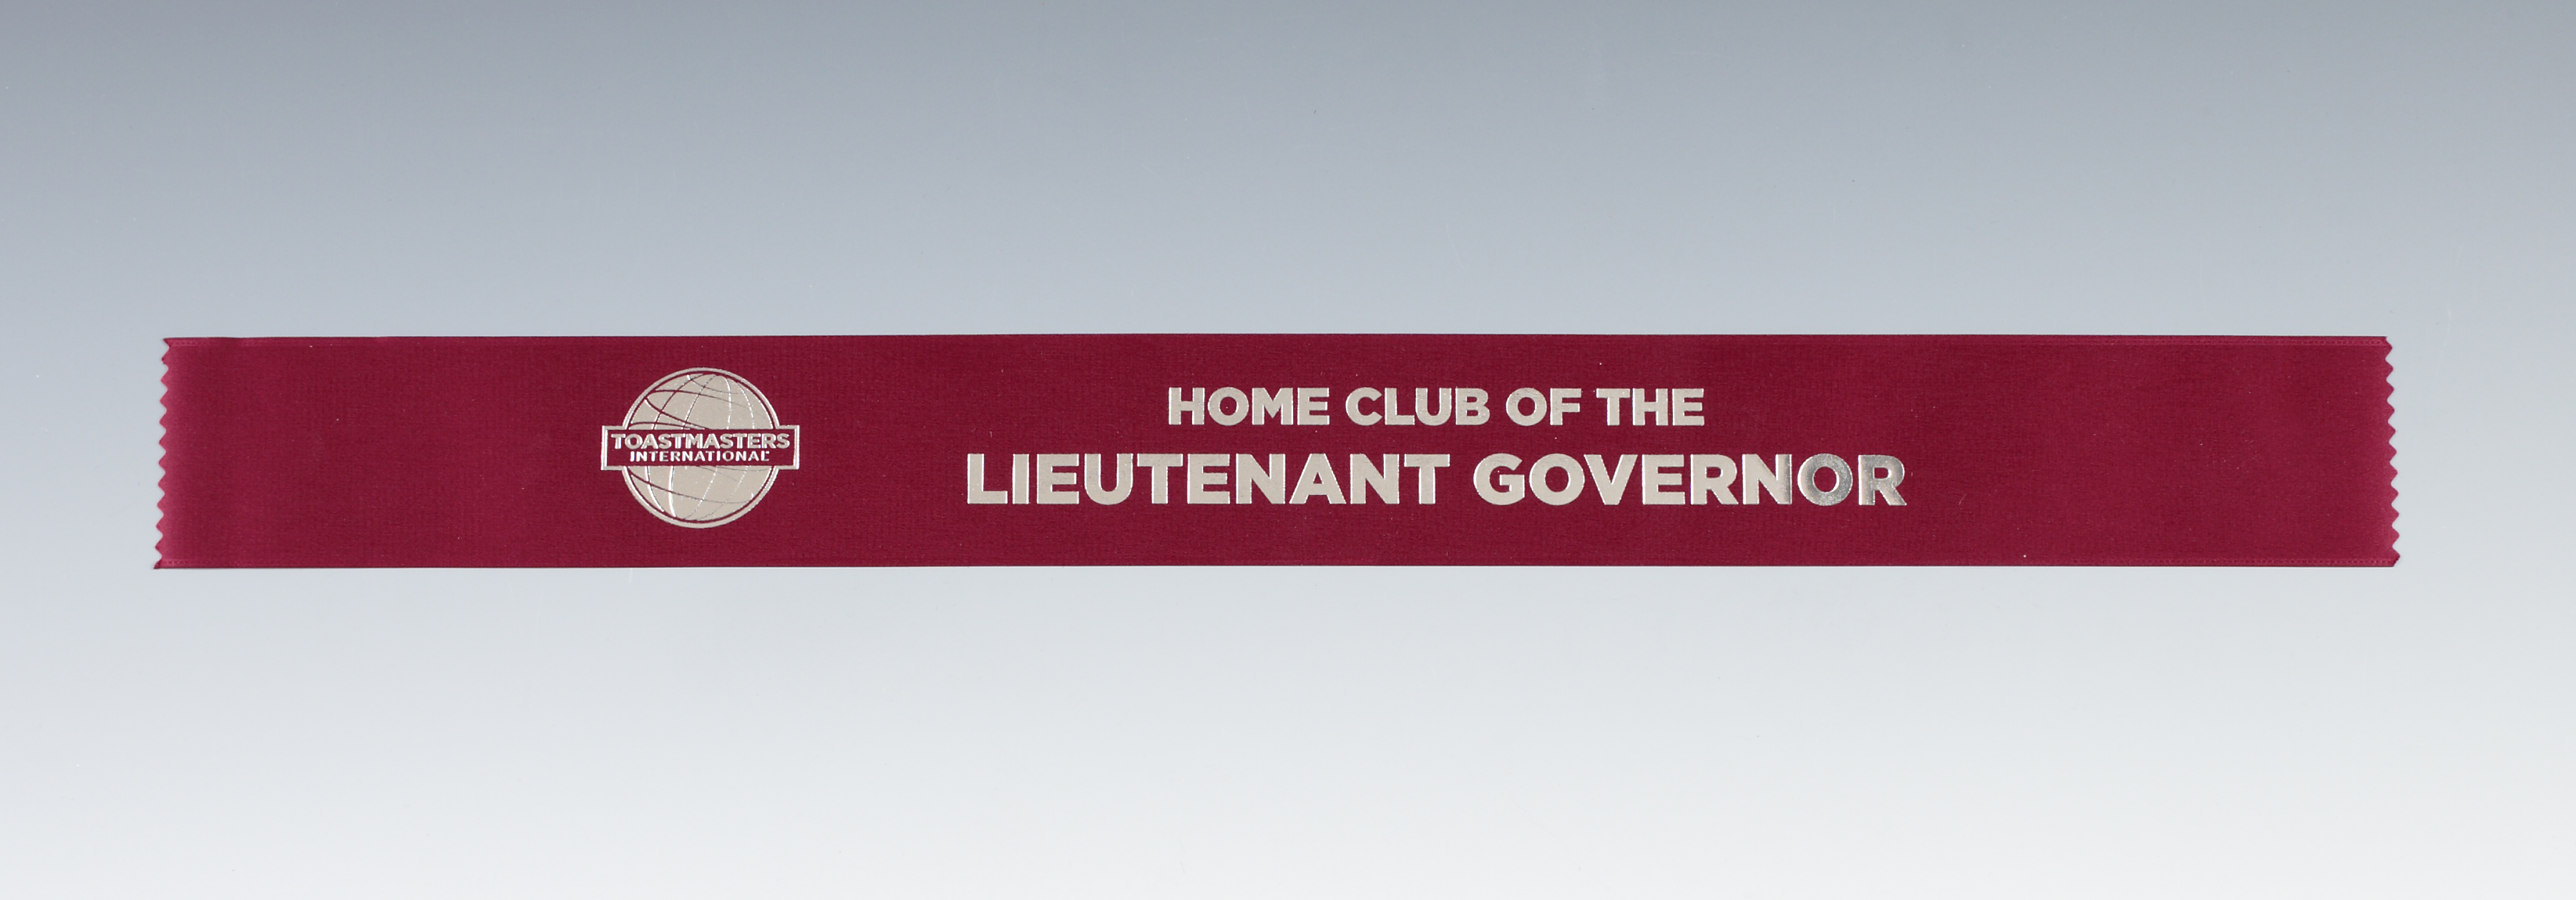 Home Club of the Lieutenant Governor Ribbon